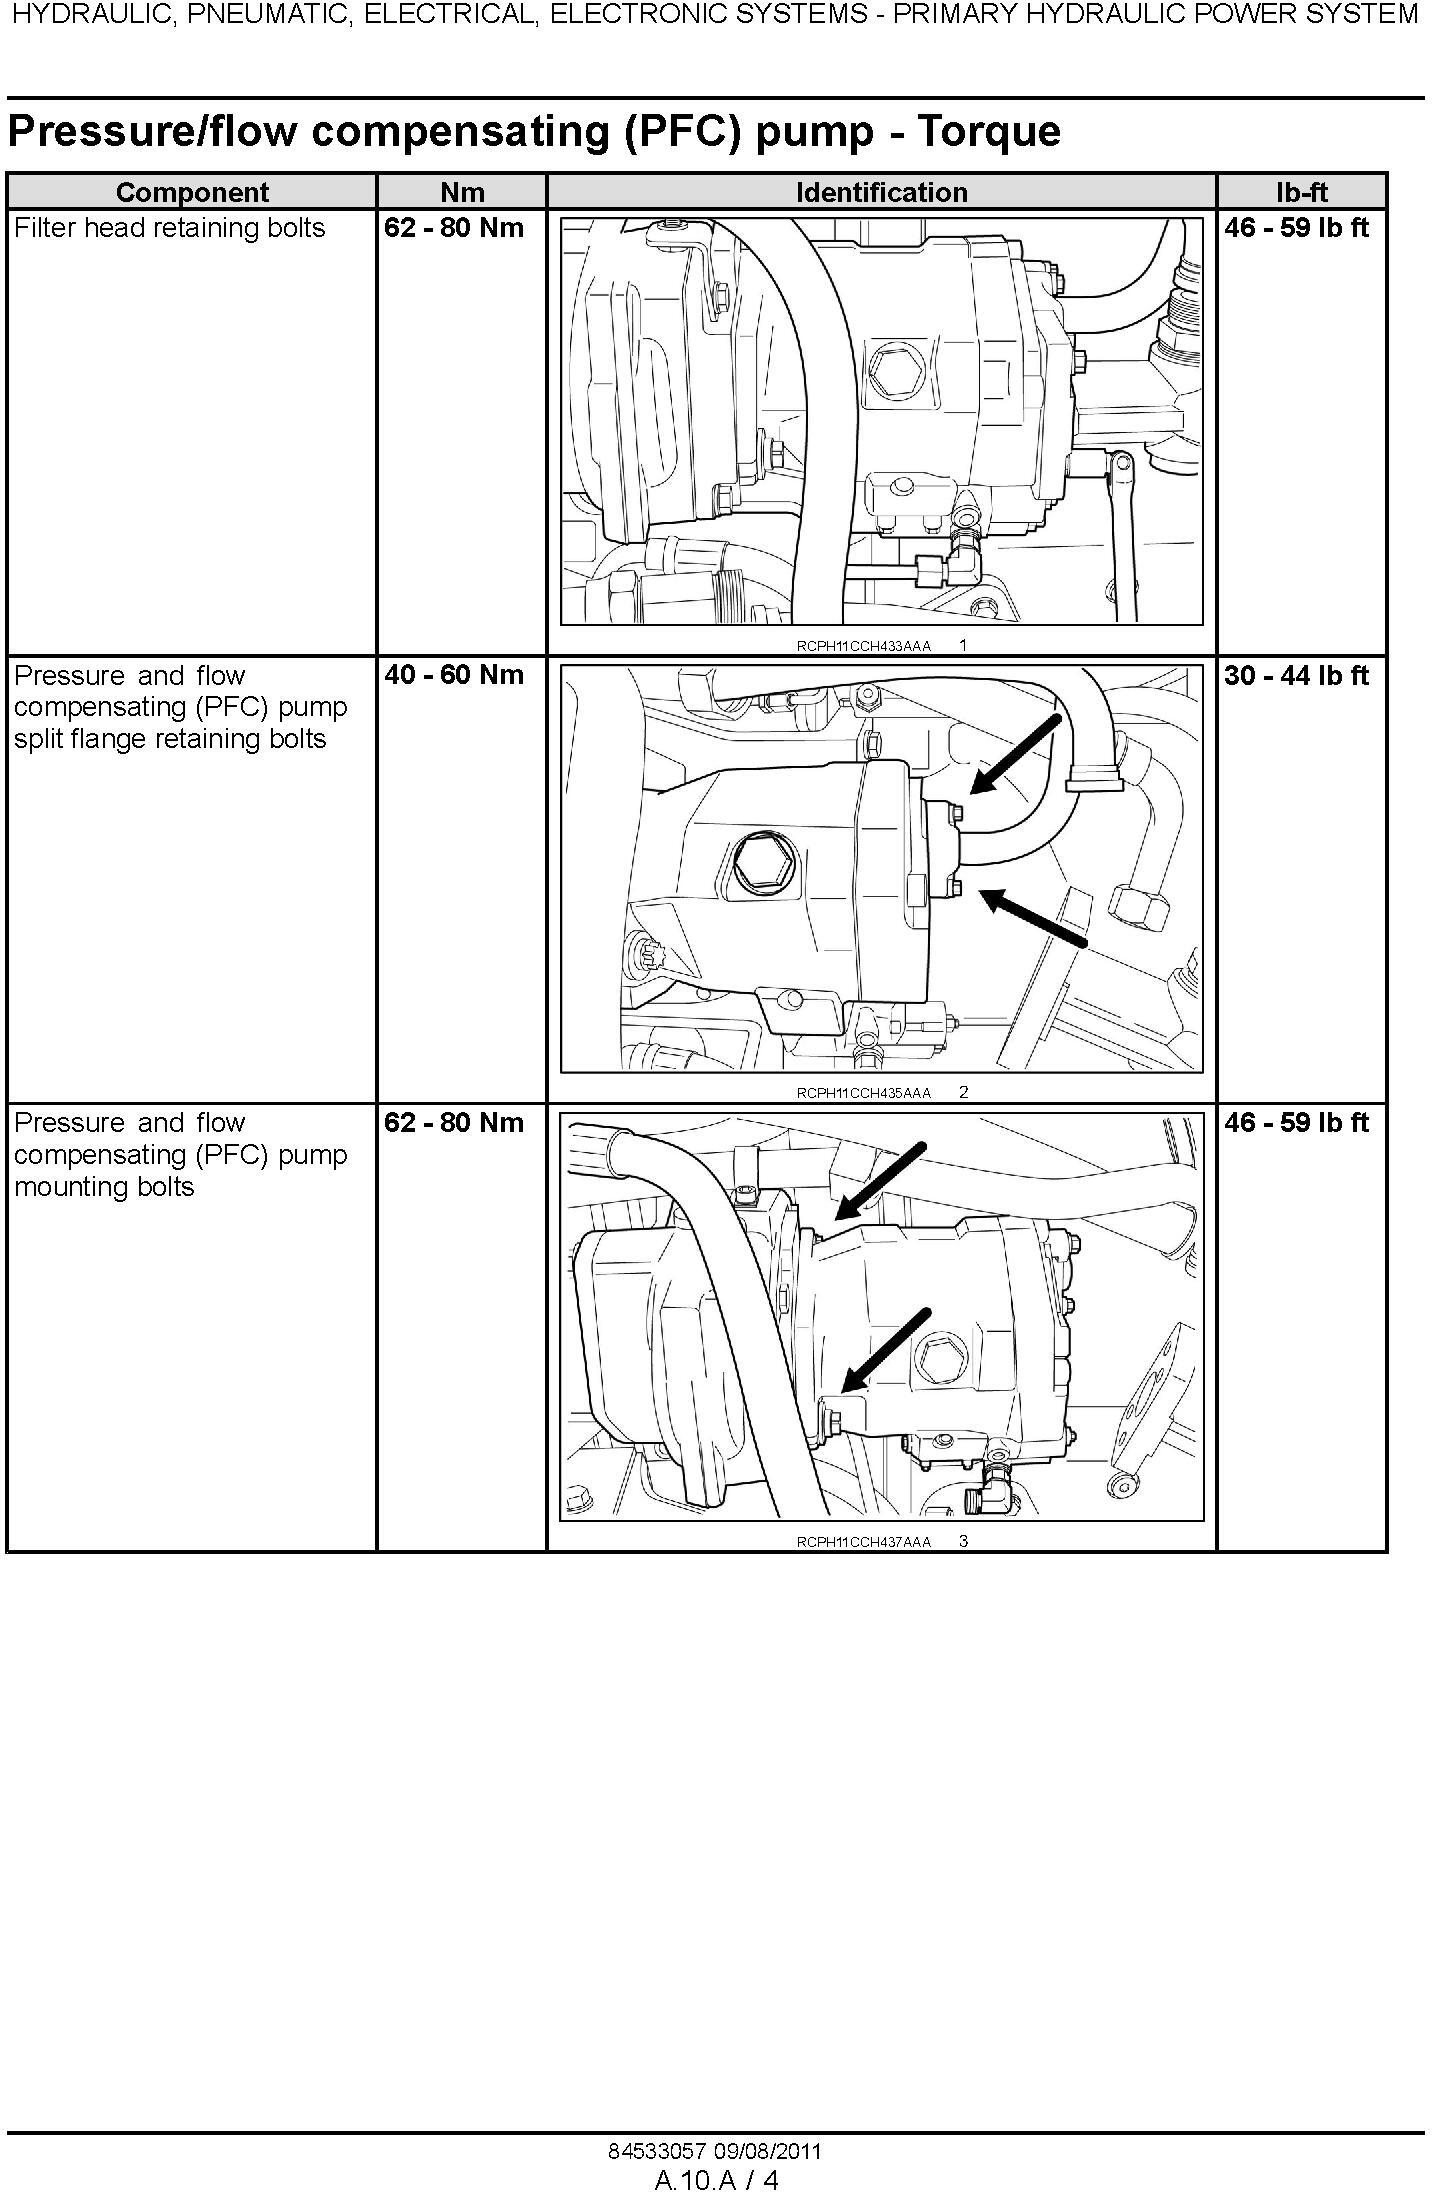 New Holland T8.275, T8.300, T8.330, T8.360, T8.390 Agricultural Tractor Service Manual (08/2011) - 1